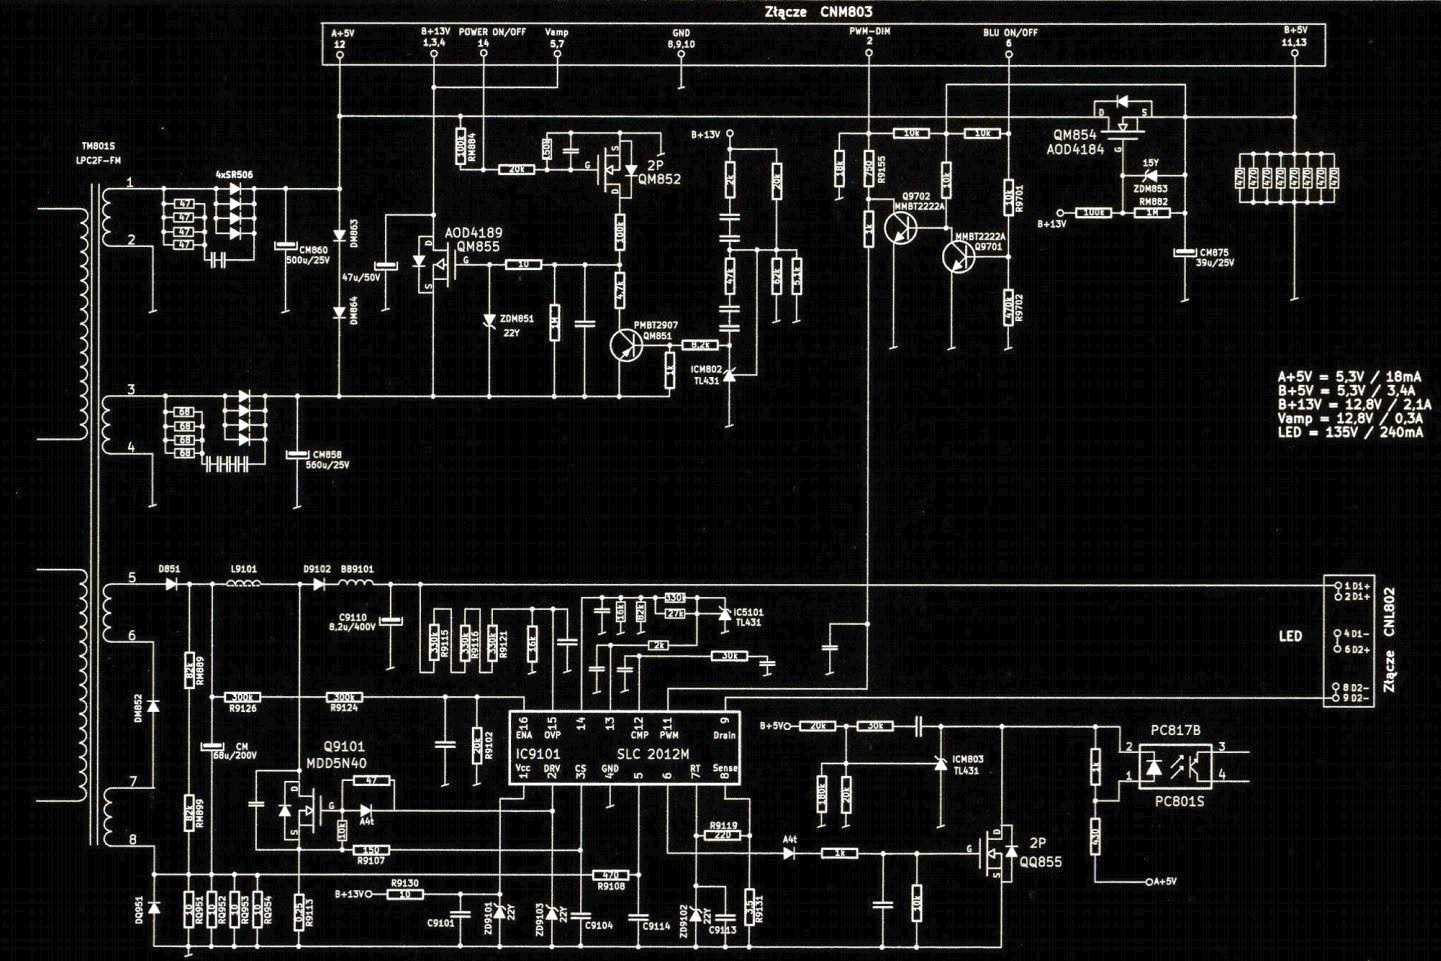 Samsung Tv Circuit Diagram Archive Of Automotive Wiring Board Schematic Led Starting Know About U2022 Rh Prezzy Co Pdf